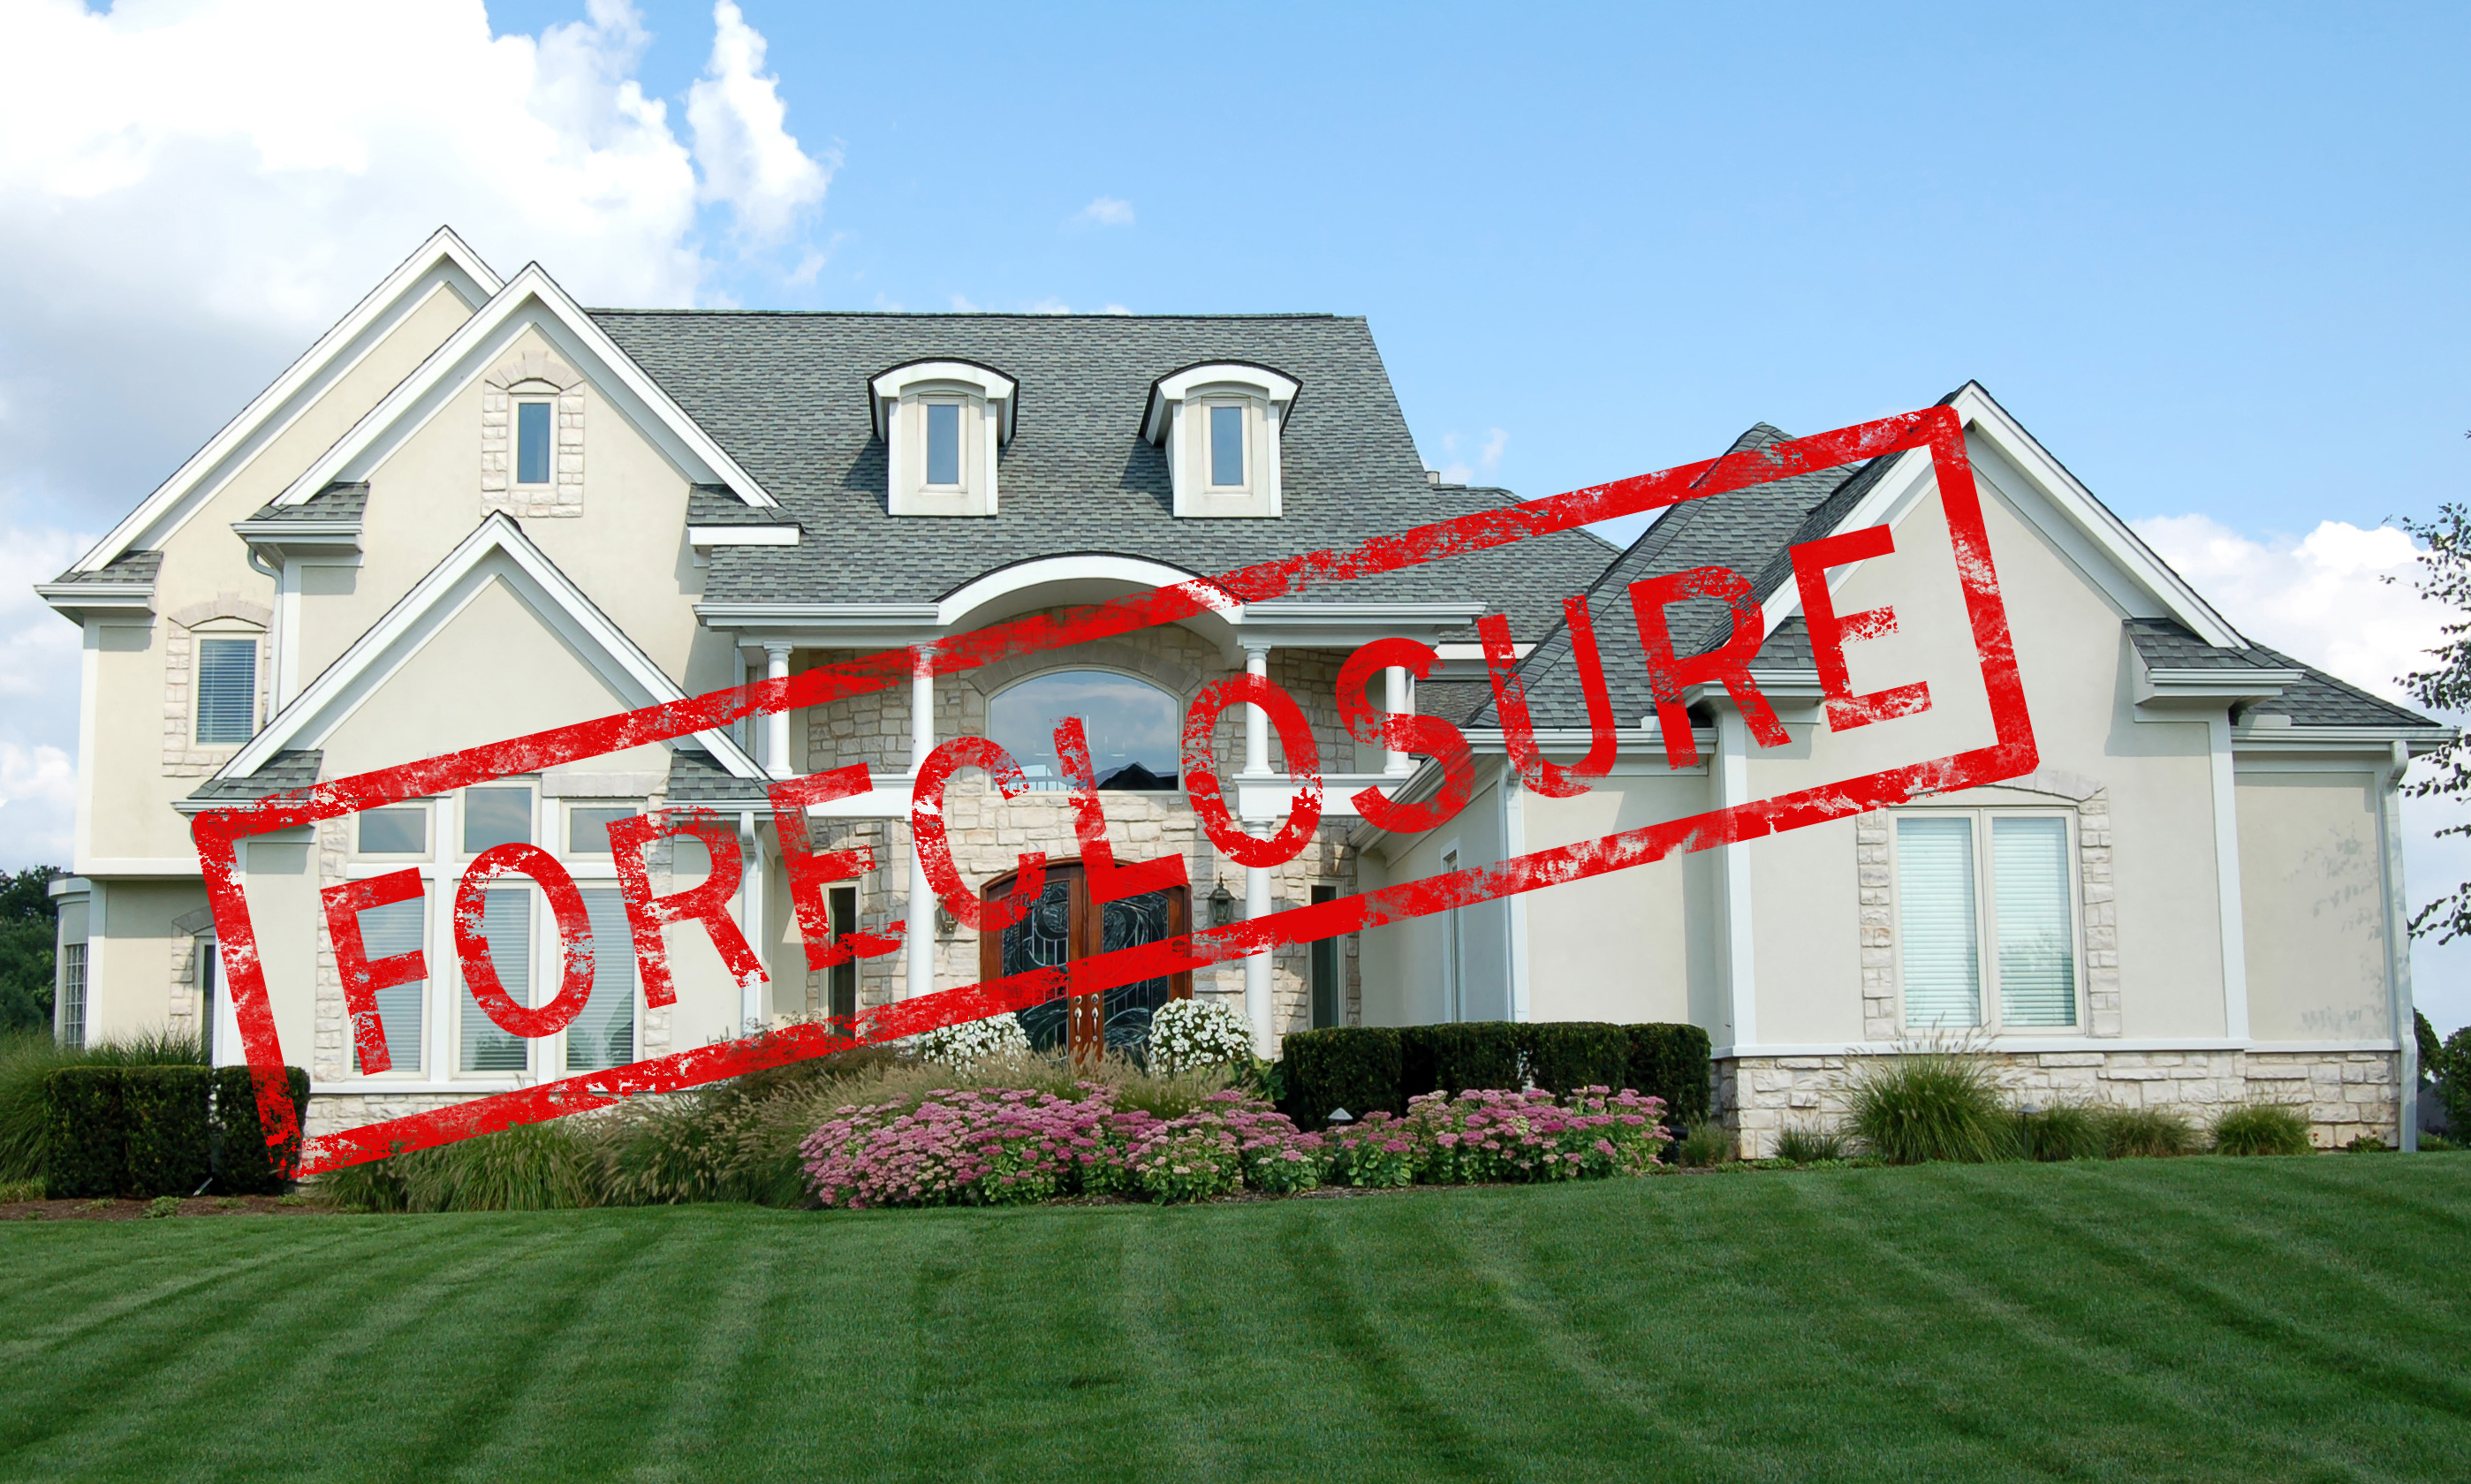 Call Ascension Appraisal to discuss appraisals on Worcester foreclosures